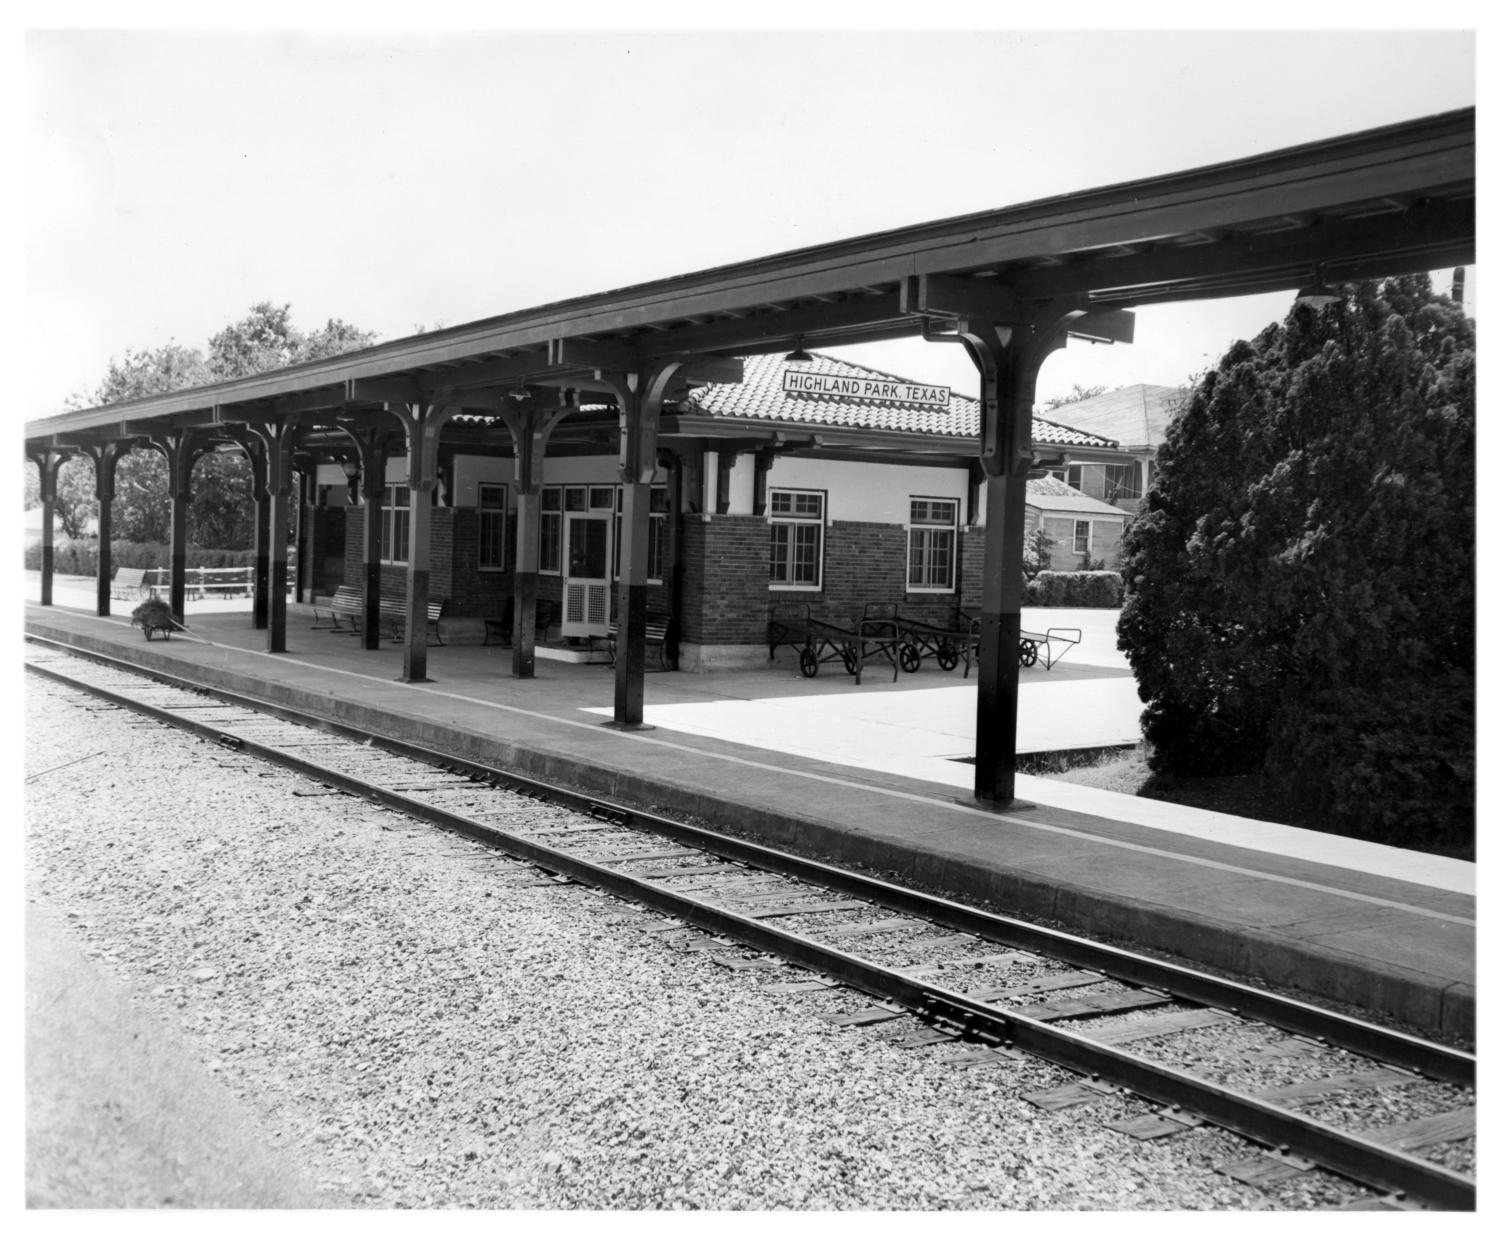 [Highland Park, Texas Depot], The new Highland Park, Texas Depot of the Missouri - Kansas - Texas Railroad (KATY) which opened on July 1, 1922 and closed on July 1, 1965.,